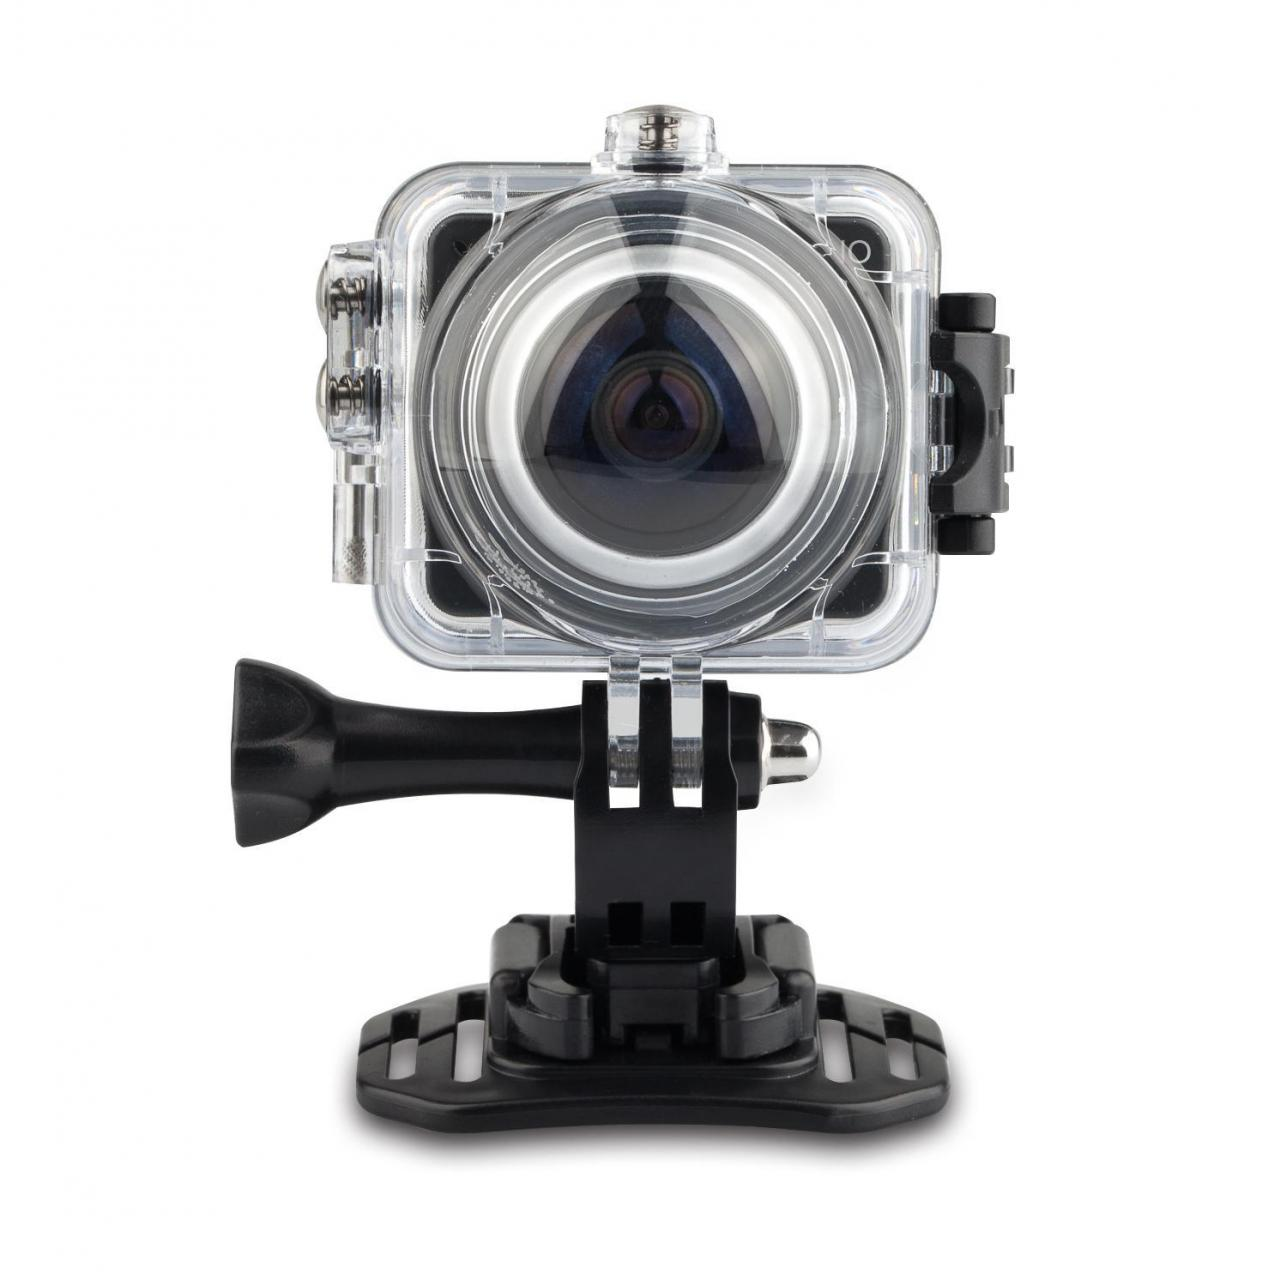 Buy cheap chaungseer360B Sports camera from wholesalers